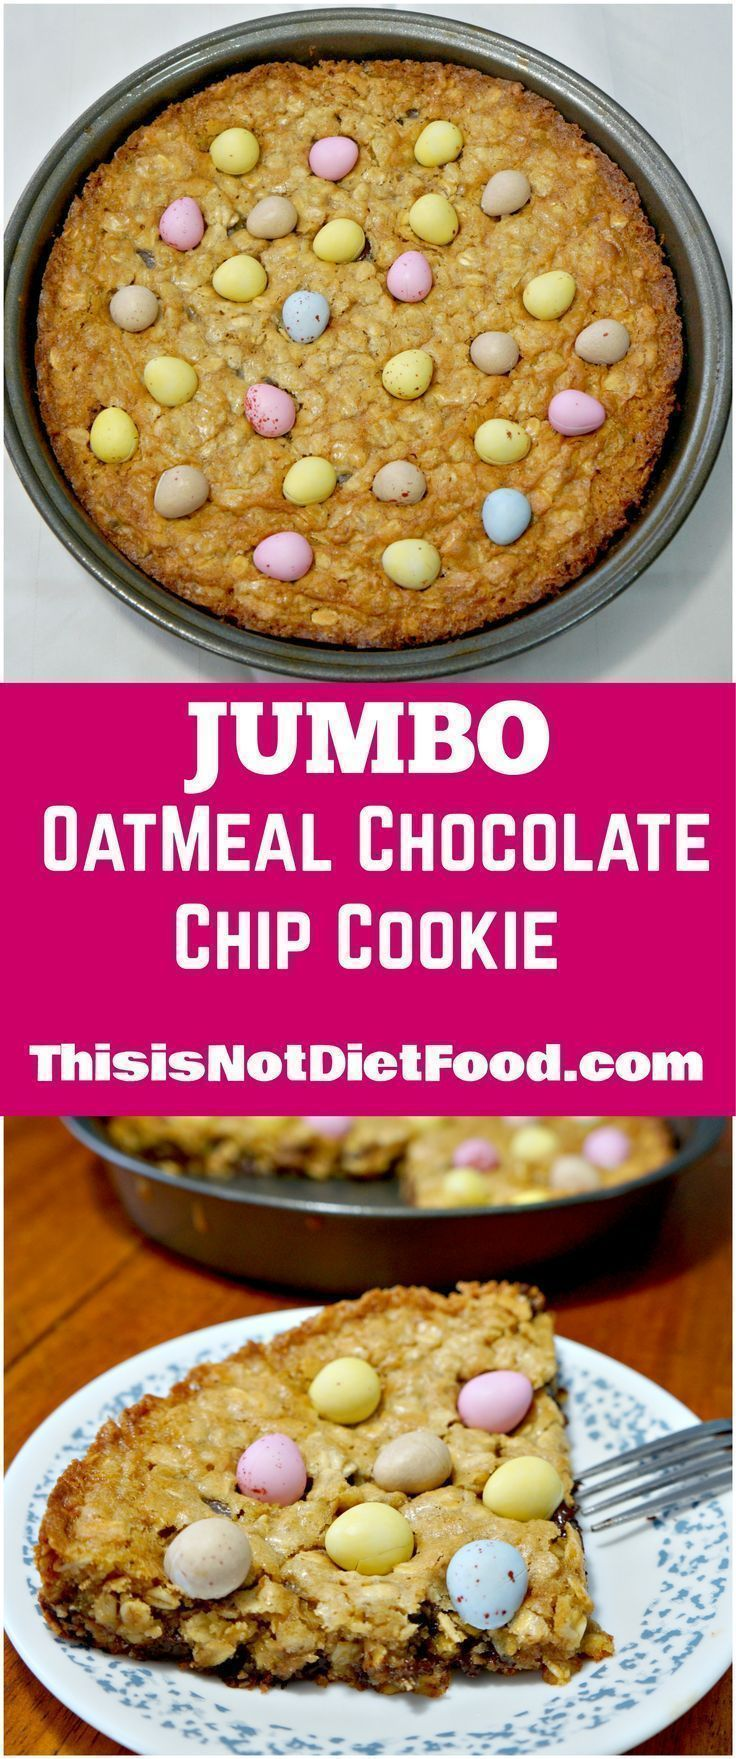 Jumbo Taarten Jumbo Oatmeal Chocolate Chip Cookie Giant Cookie With Mini Eggs